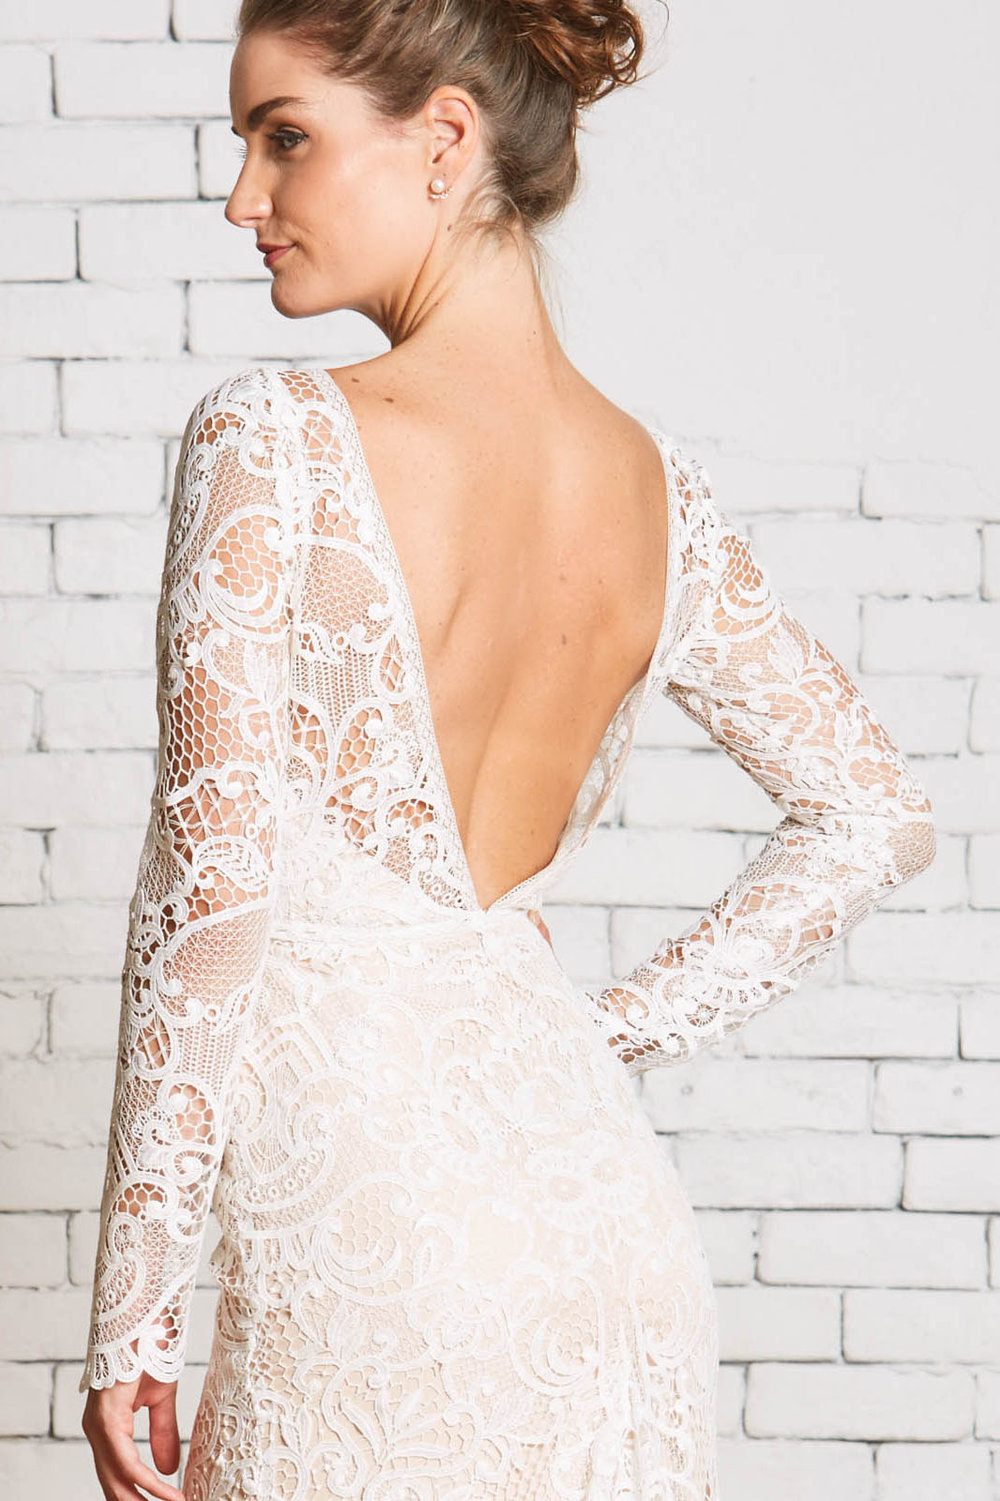 7b.Rebecca_Schoneveld_Freya_Top_Back_Bold_Lace_Pattern_Modern_Wedding_Looks.jpg